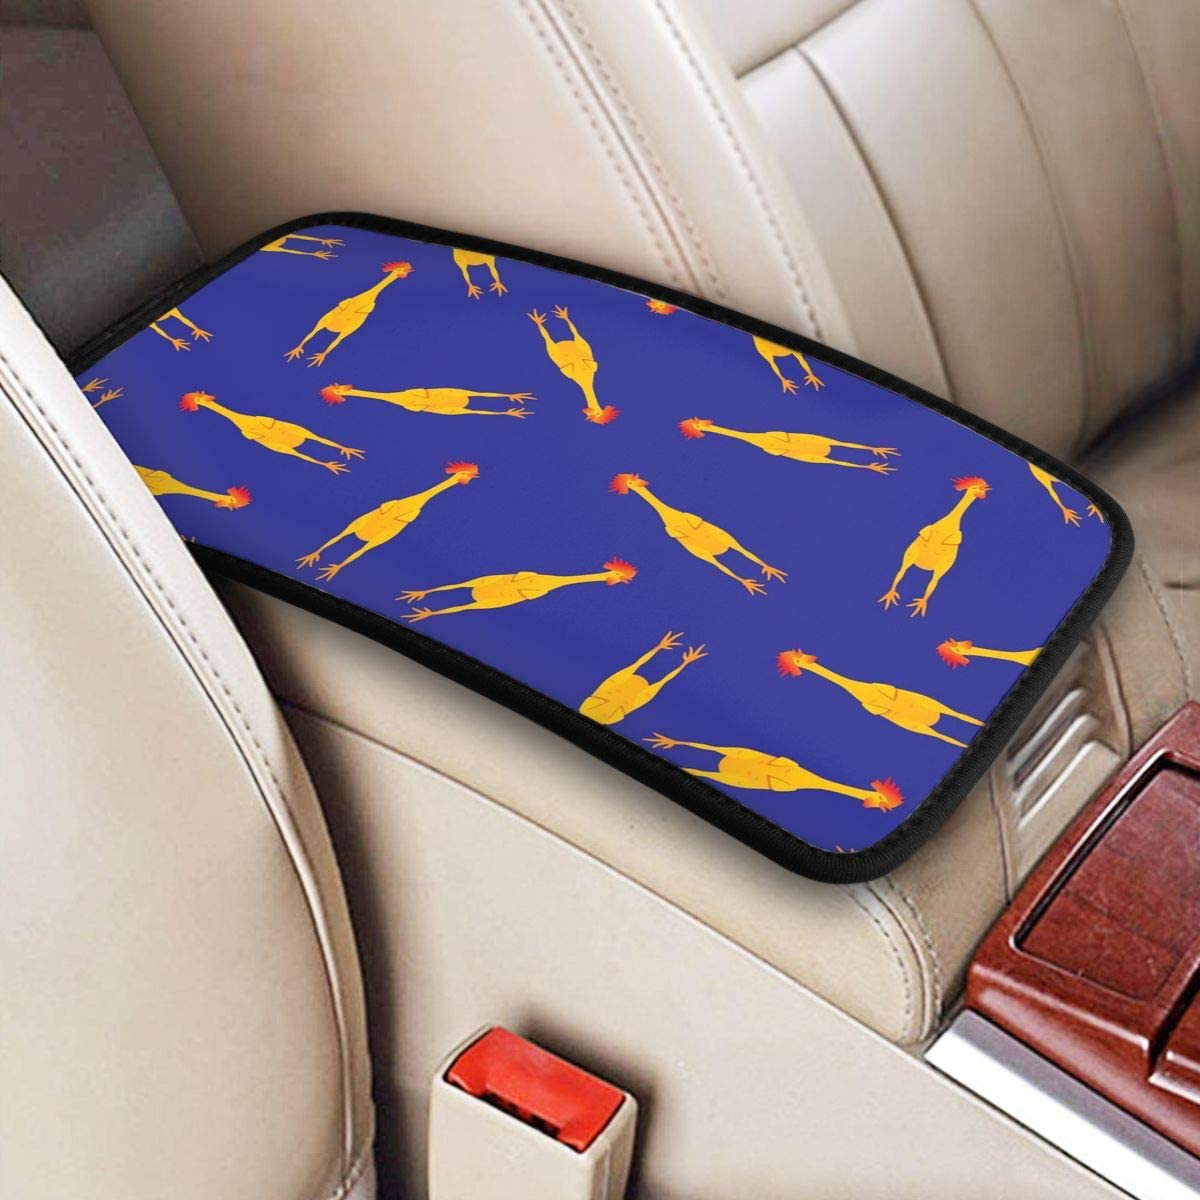 Wolla-ST Funny Rubber Chicken Pattern Auto Center Console Armrest Cover Pad Car Armrest Cushion Vehicle Universal Fit Soft Comfort Center Console Cover Handrail Box Decoration Cushion